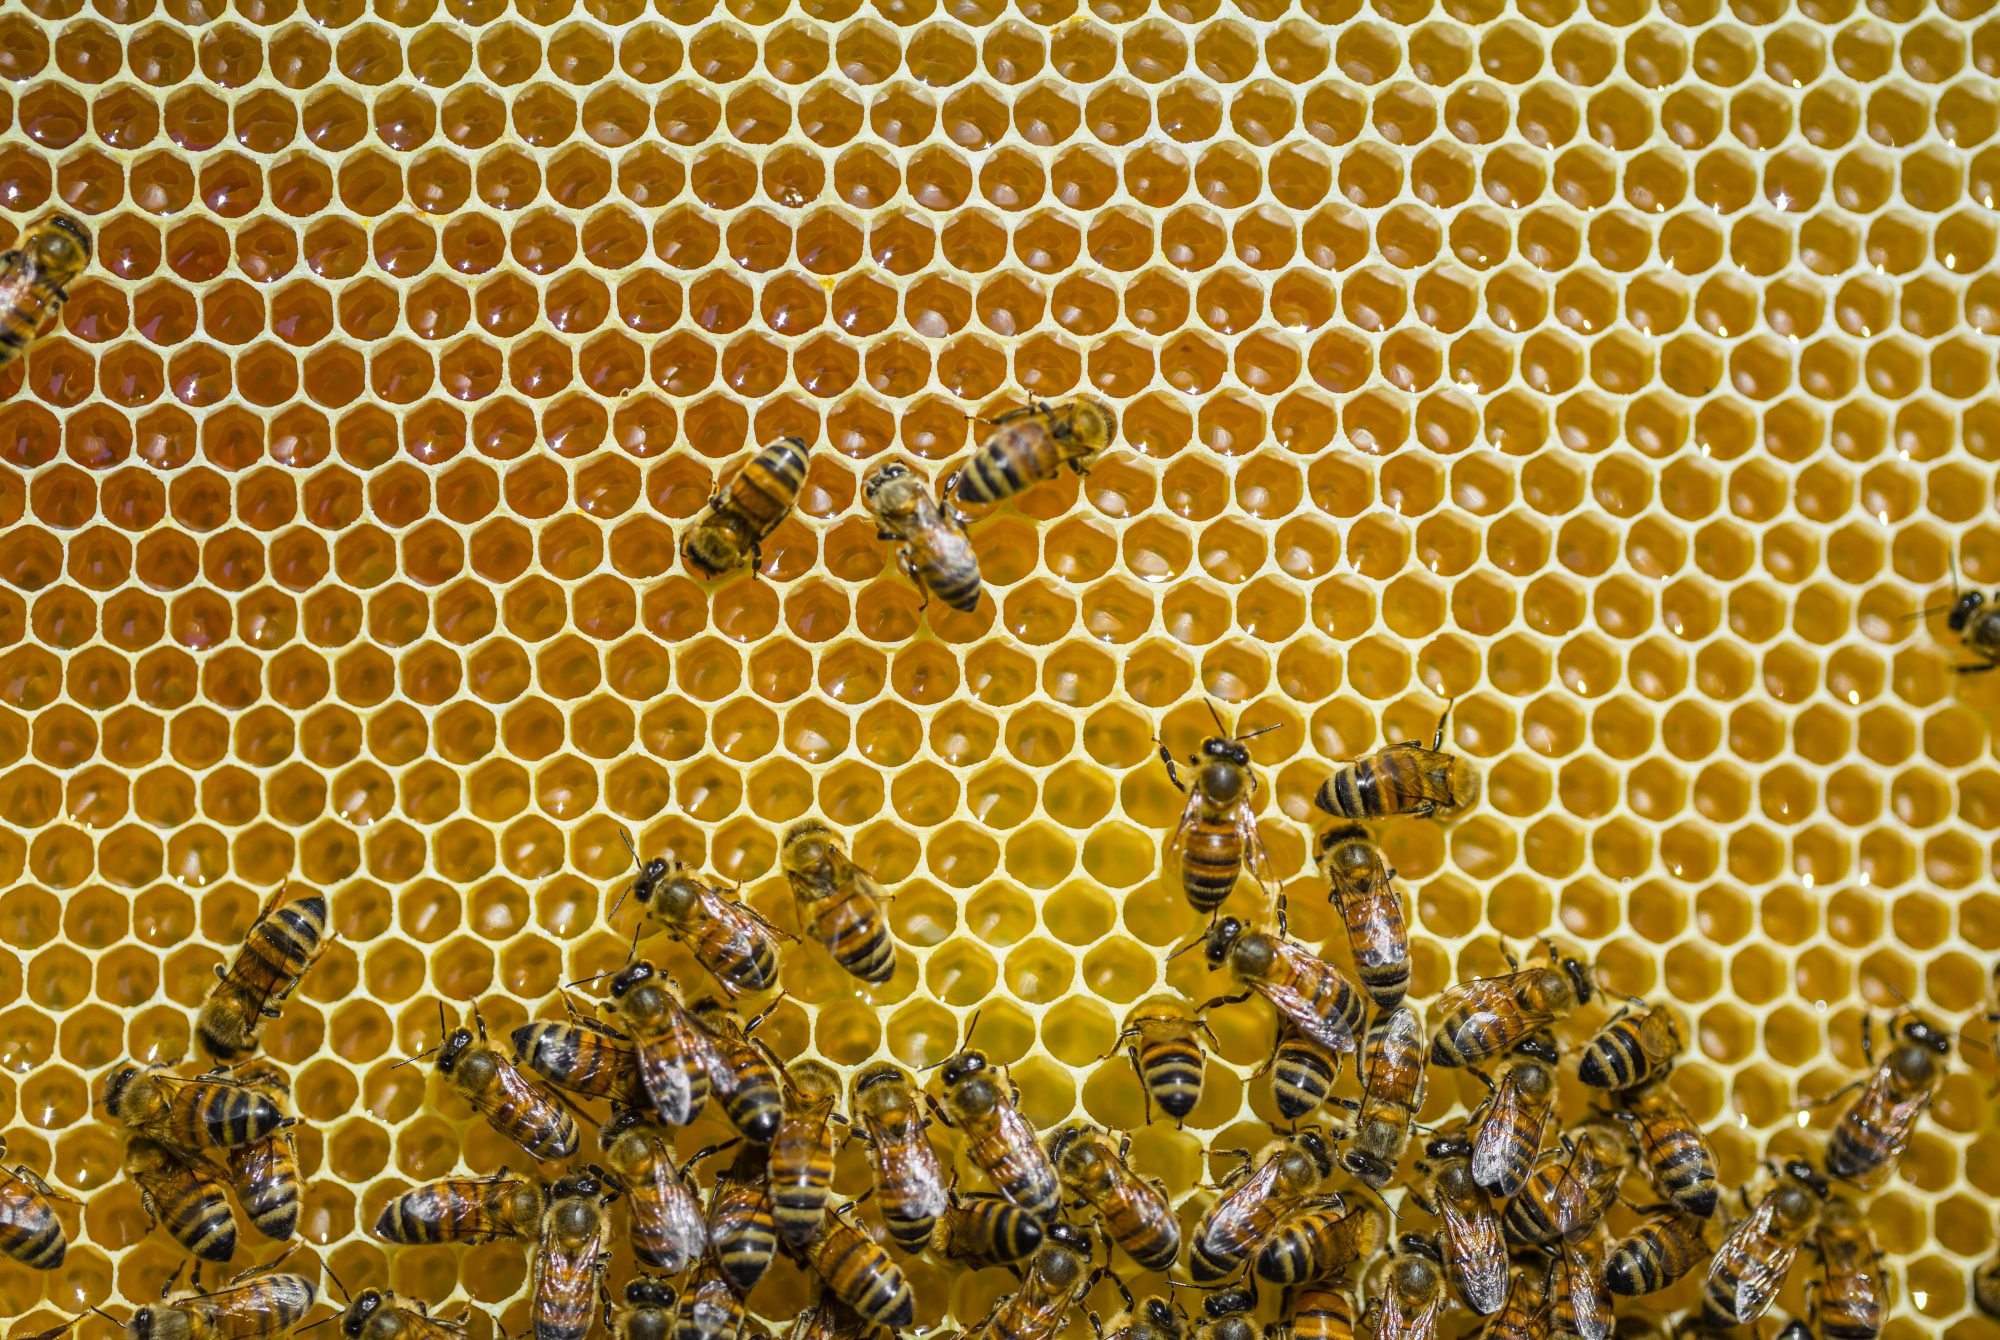 Bees on honey Getty 9/21/20